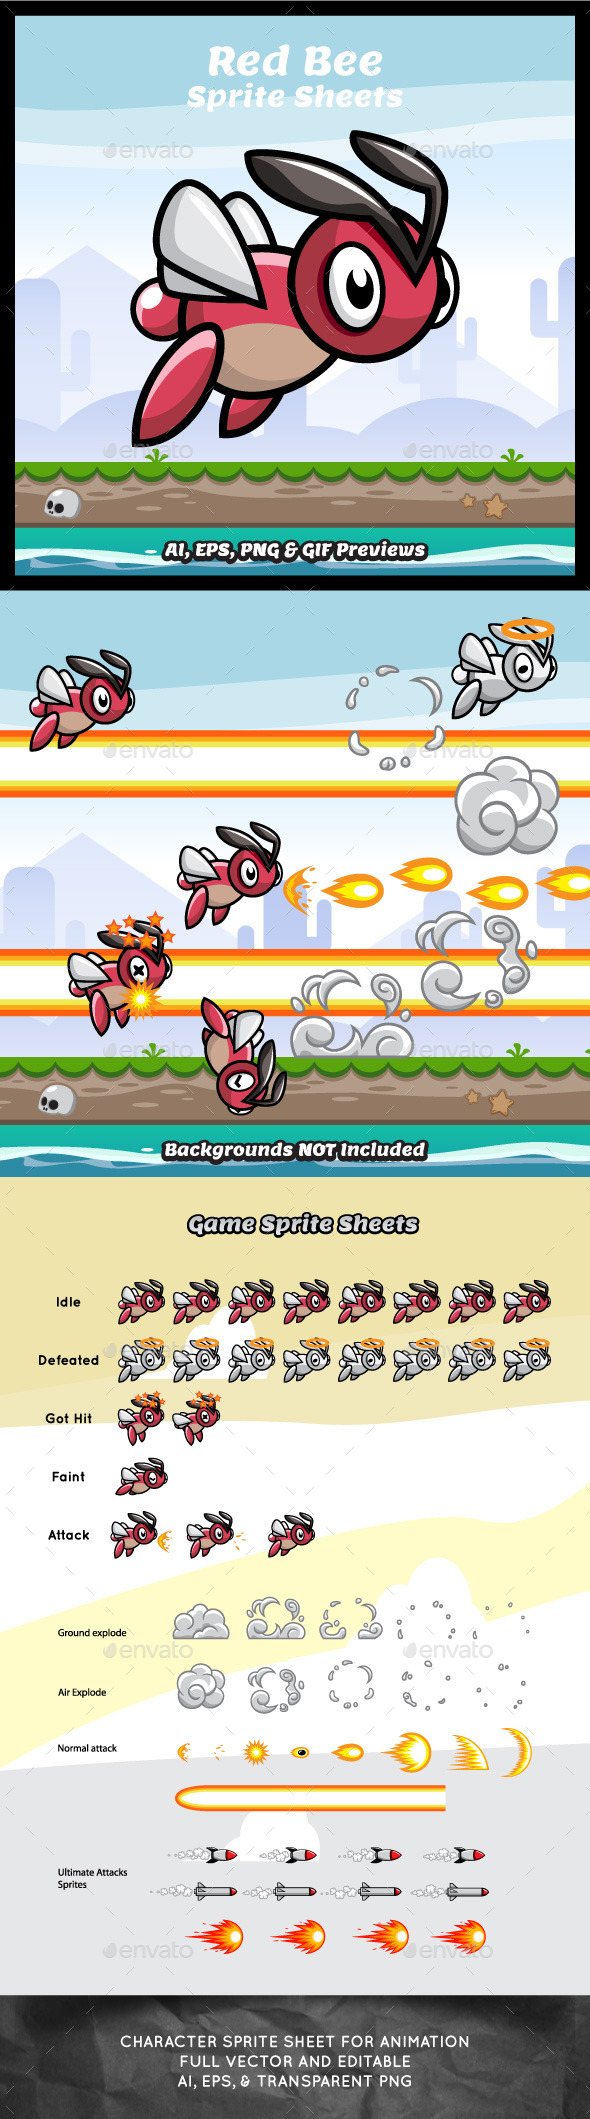 Red Bee Game Character Sprite Sheets - Sprites Game Assets